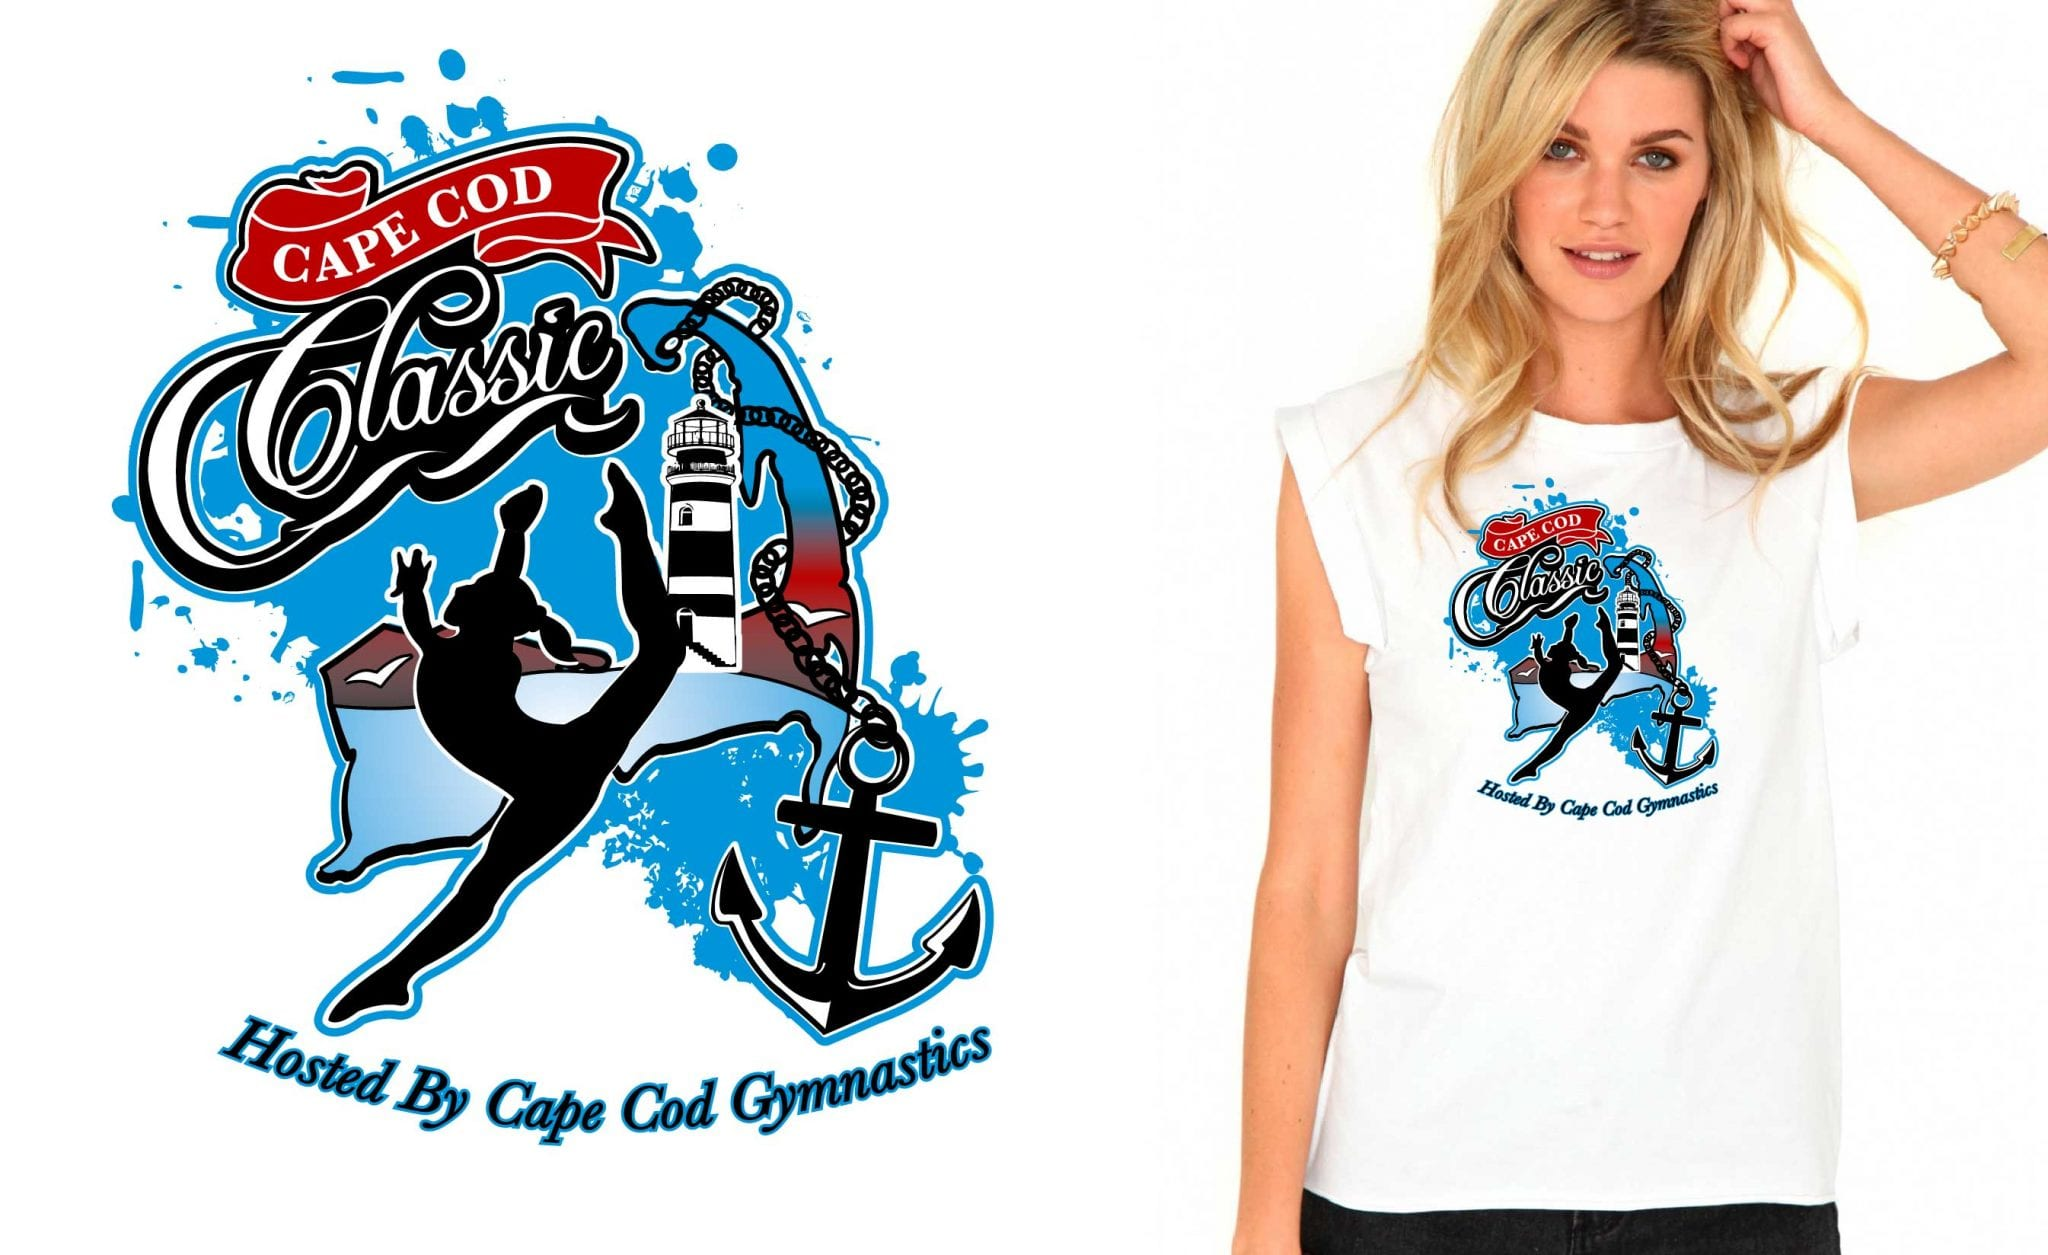 Amazing gymnastic logo design vector art for tshirt 2015 Cape Cod Classic